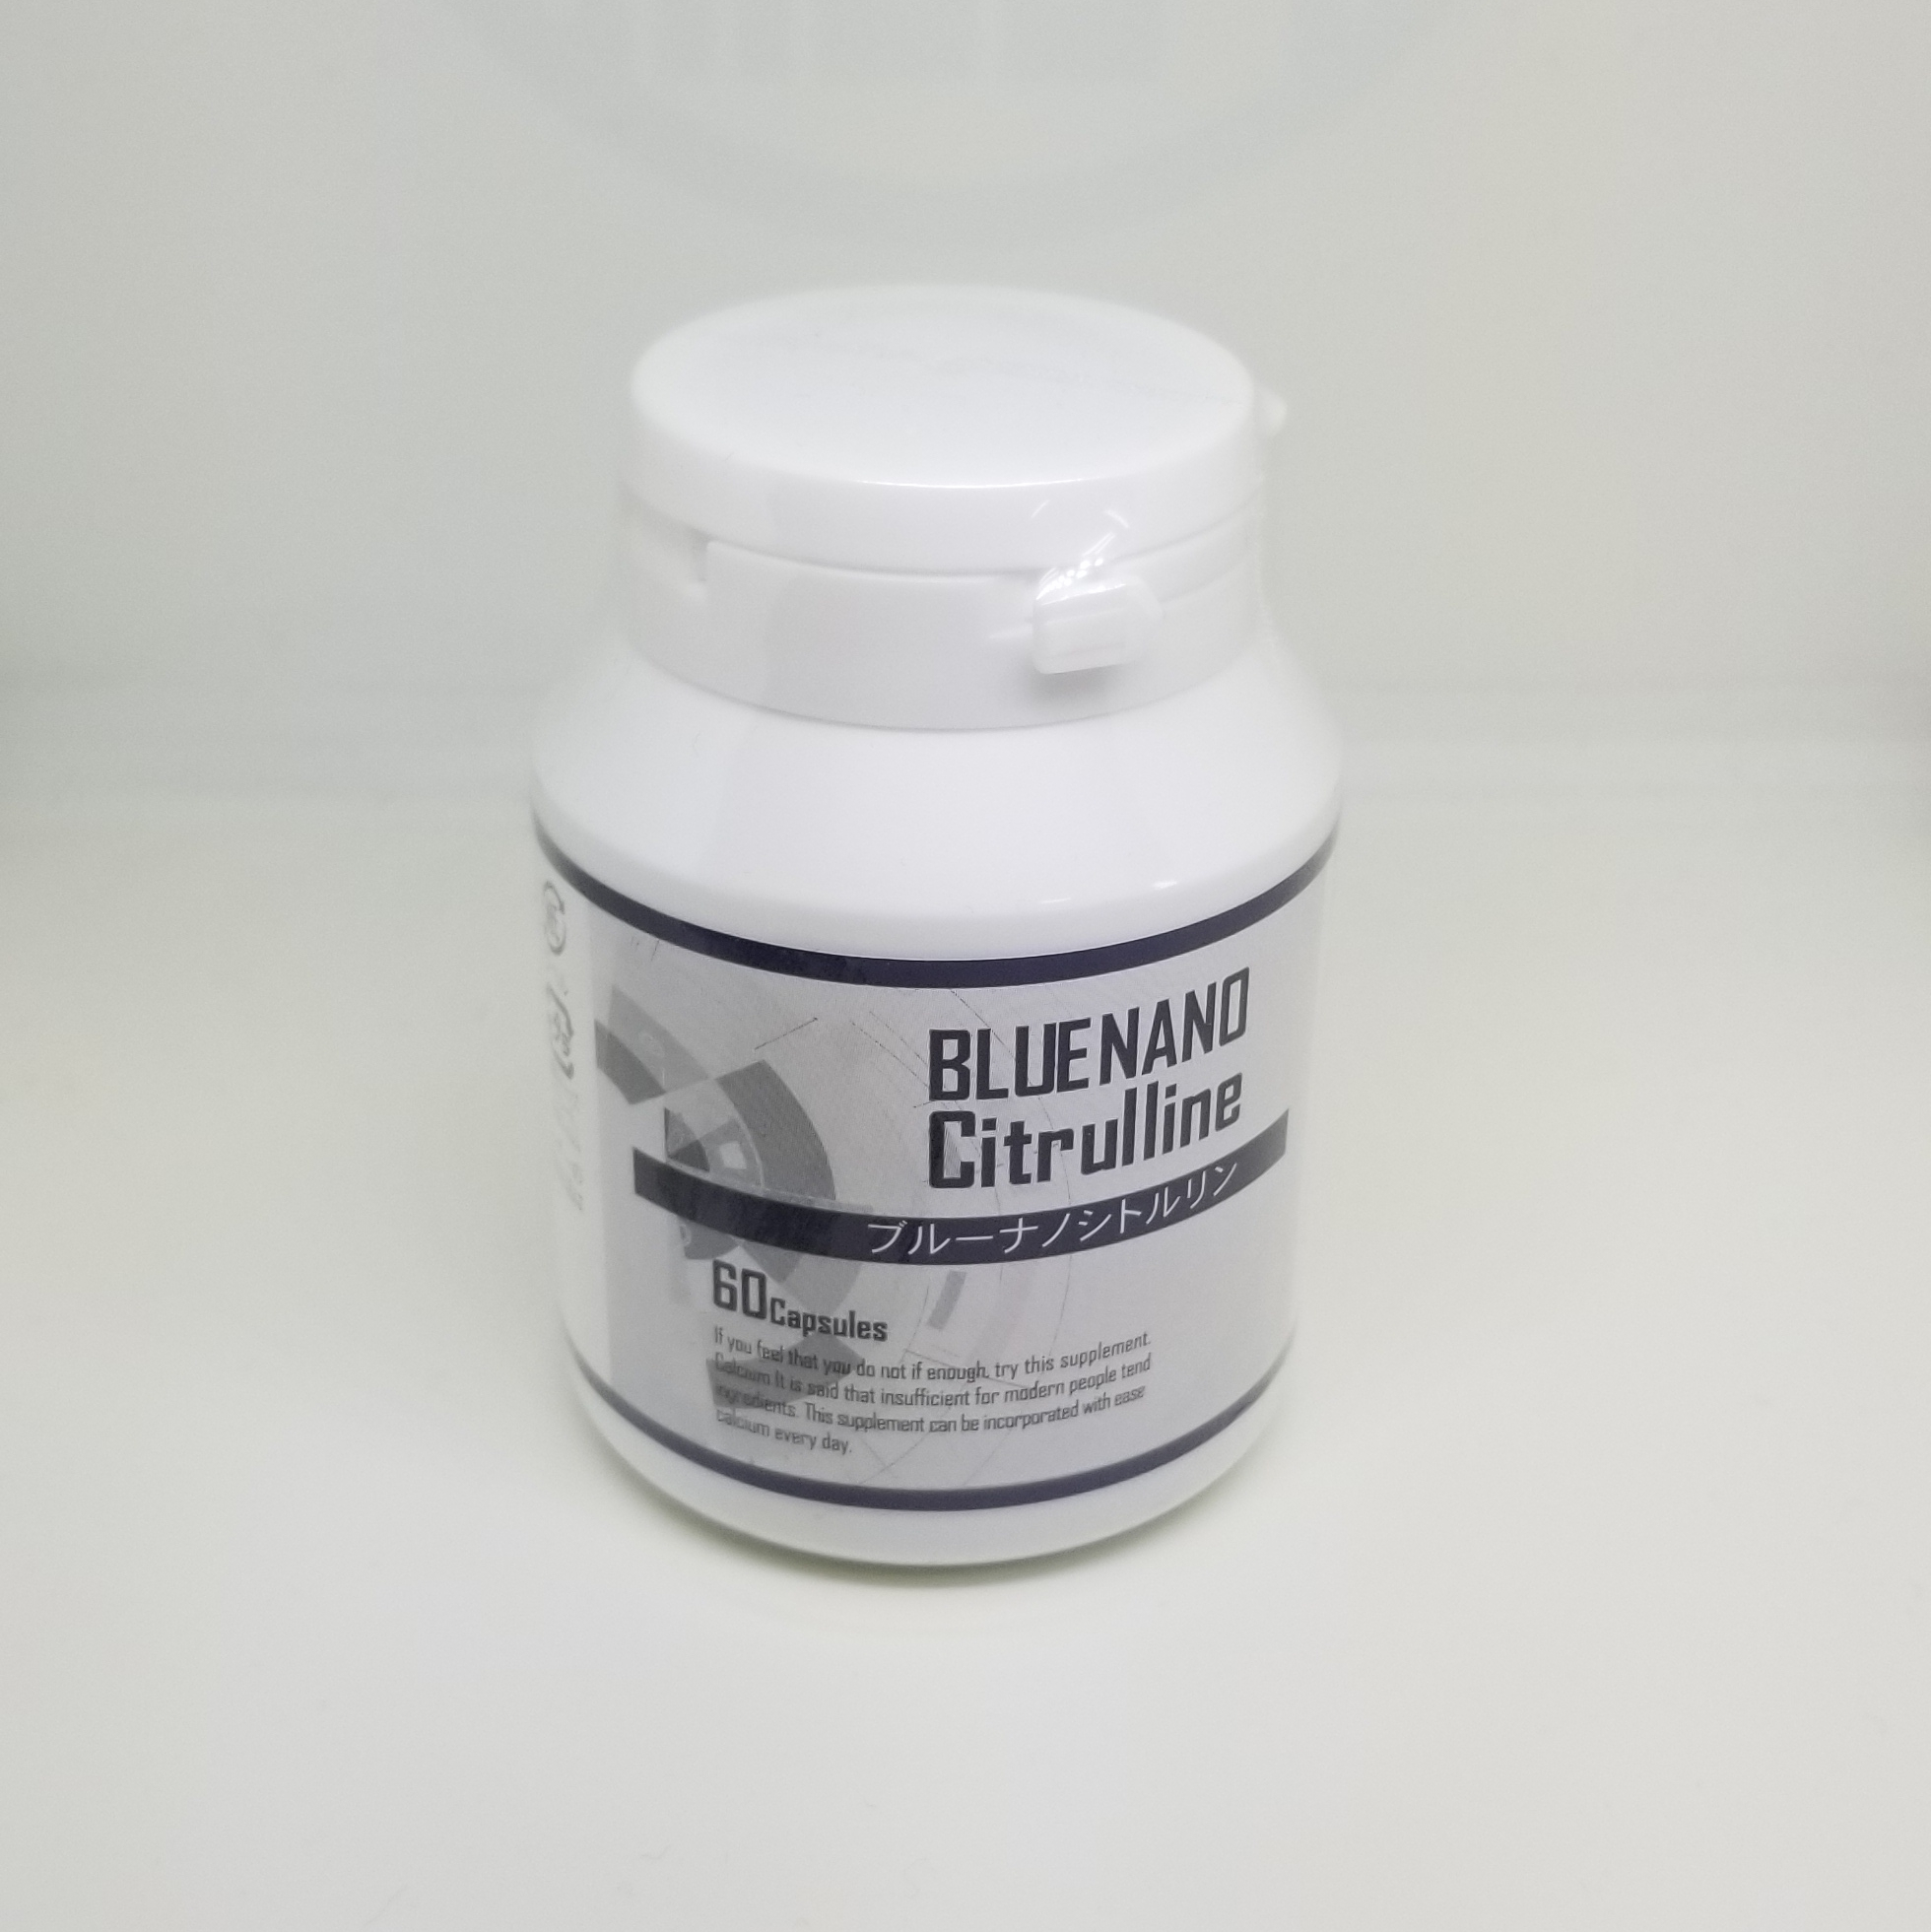 Clothing, Shoes & Accessories TOP SELLING MALE ENHANCEMENT PILLS MADE IN JAPAN BLUENANO CITRULLINE BLUE NANO